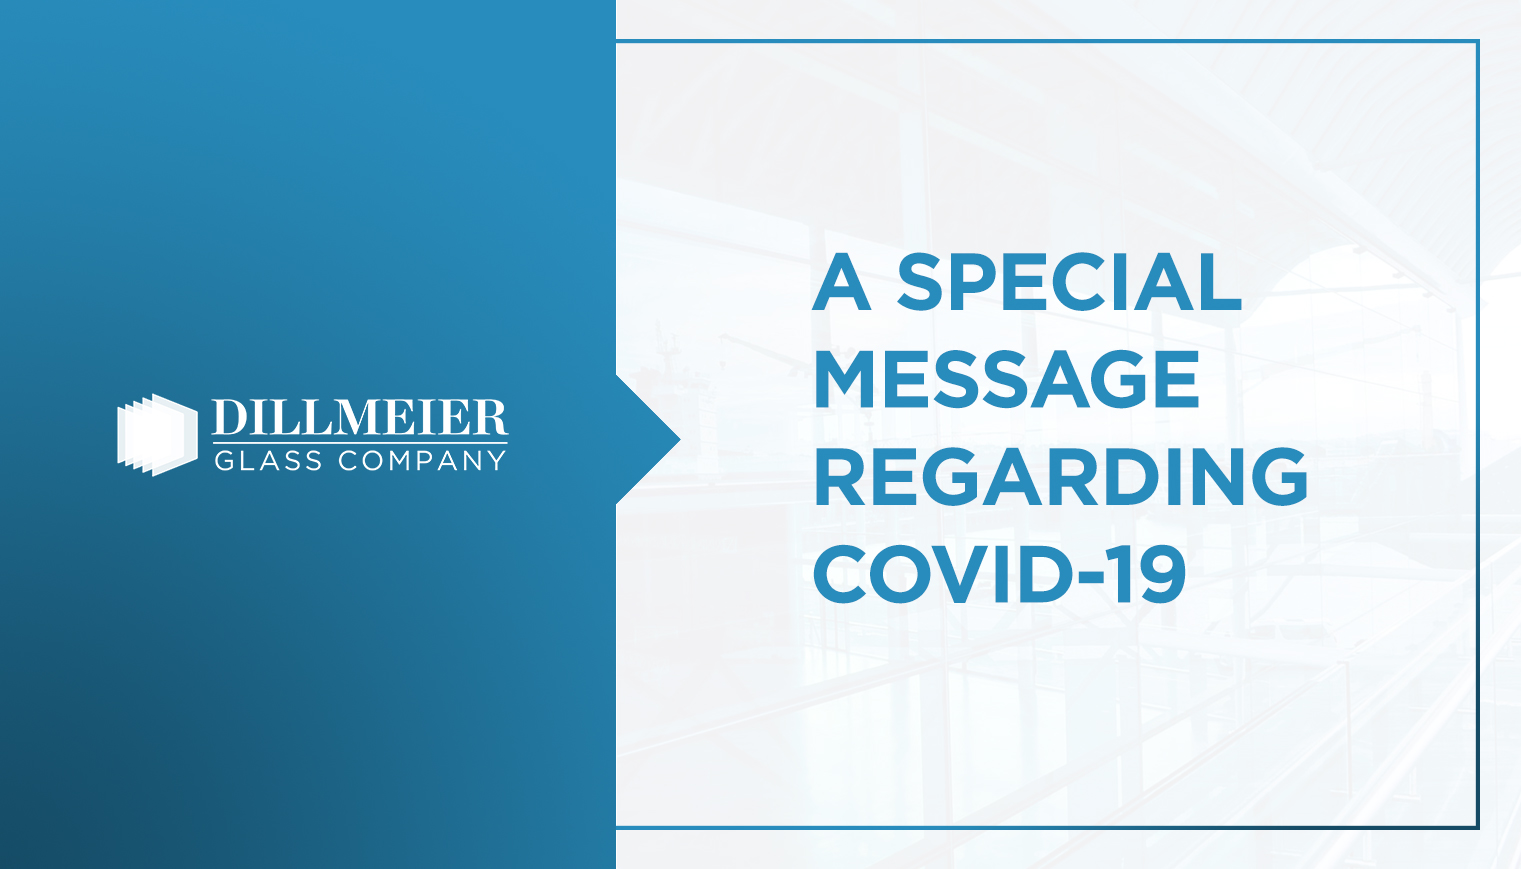 A Special Message Regarding COVID-19